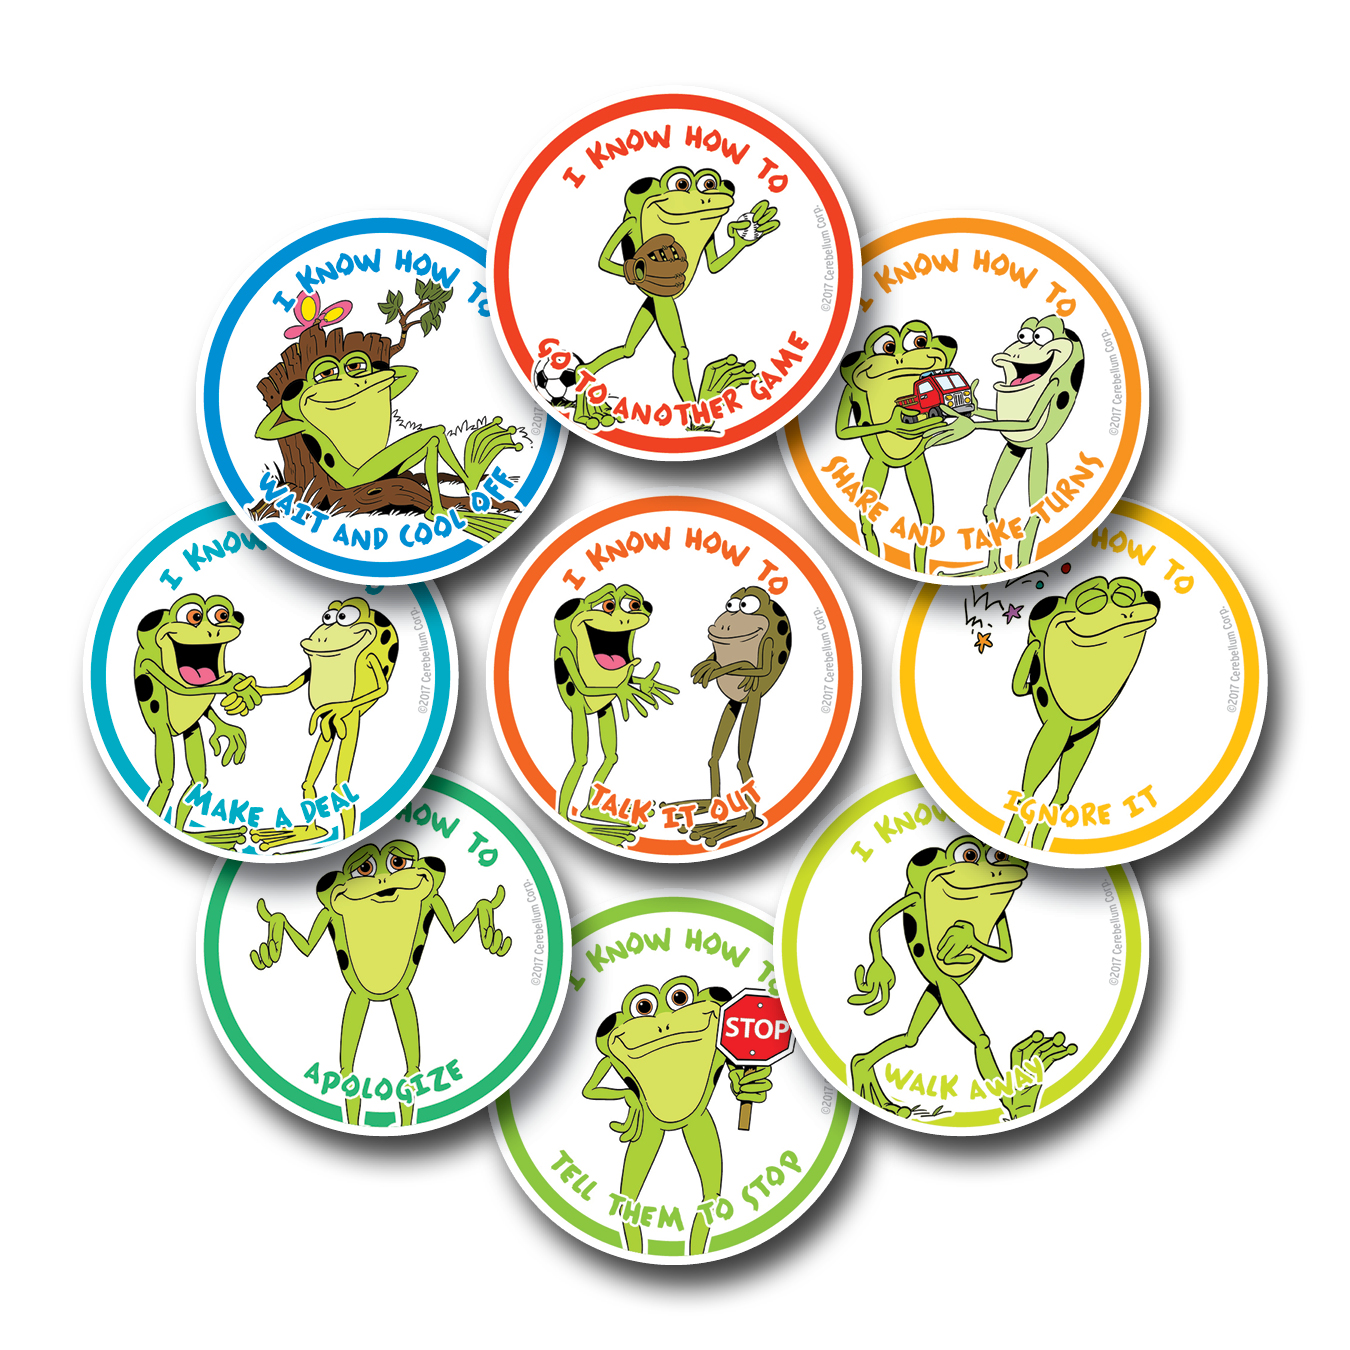 kelso's individual choice stickers